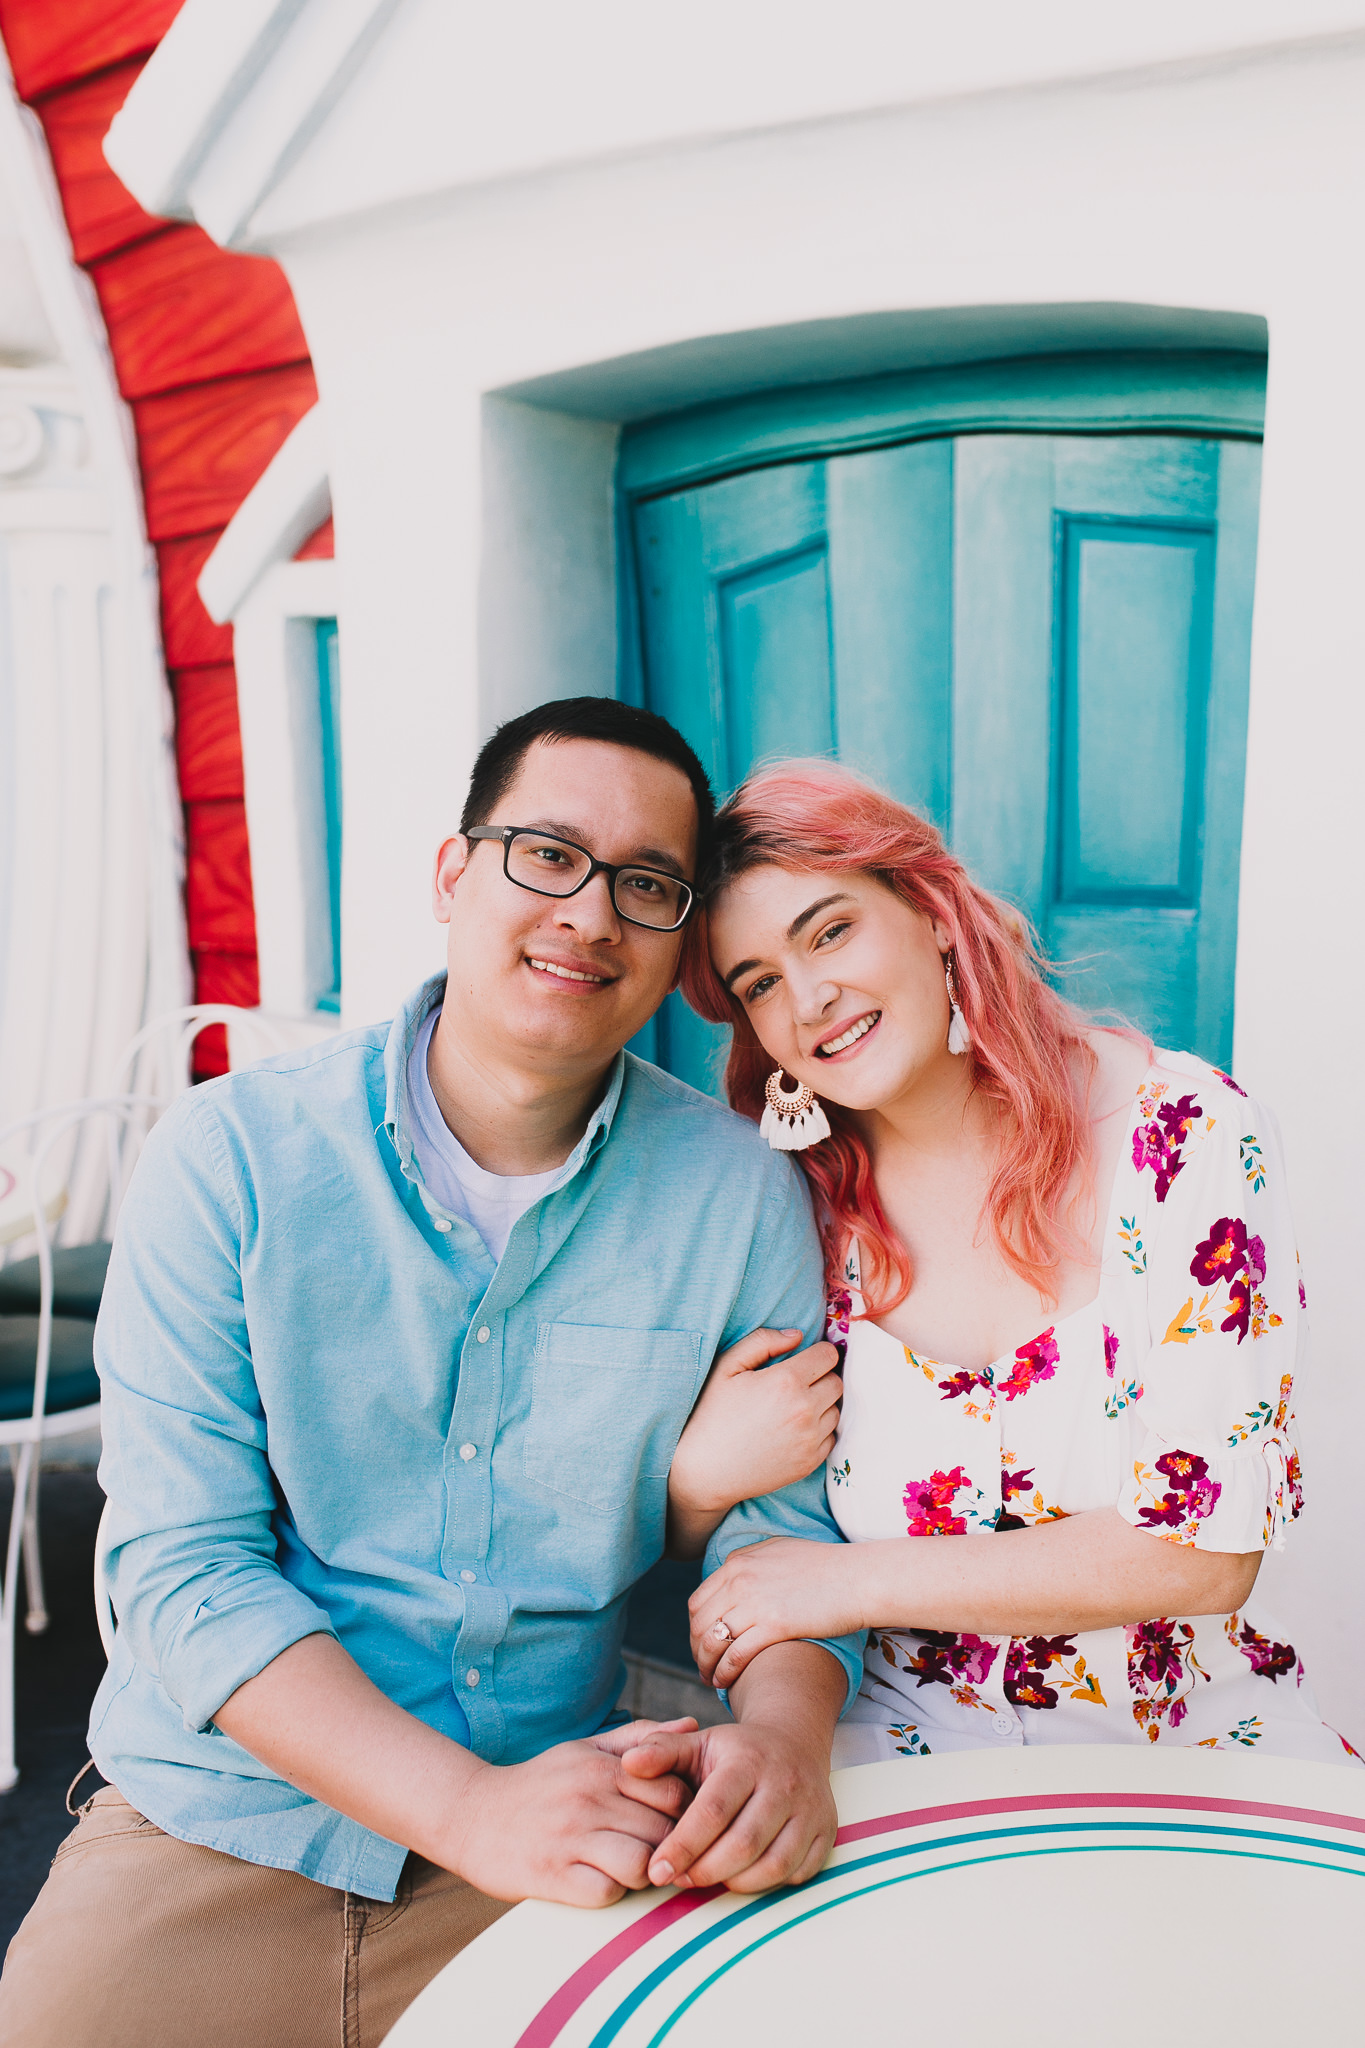 Archer Inspired Photography Disneyland Engagement Wedding Session Southern California Kayla and Kevin Lifestyle Documentary-88.jpg